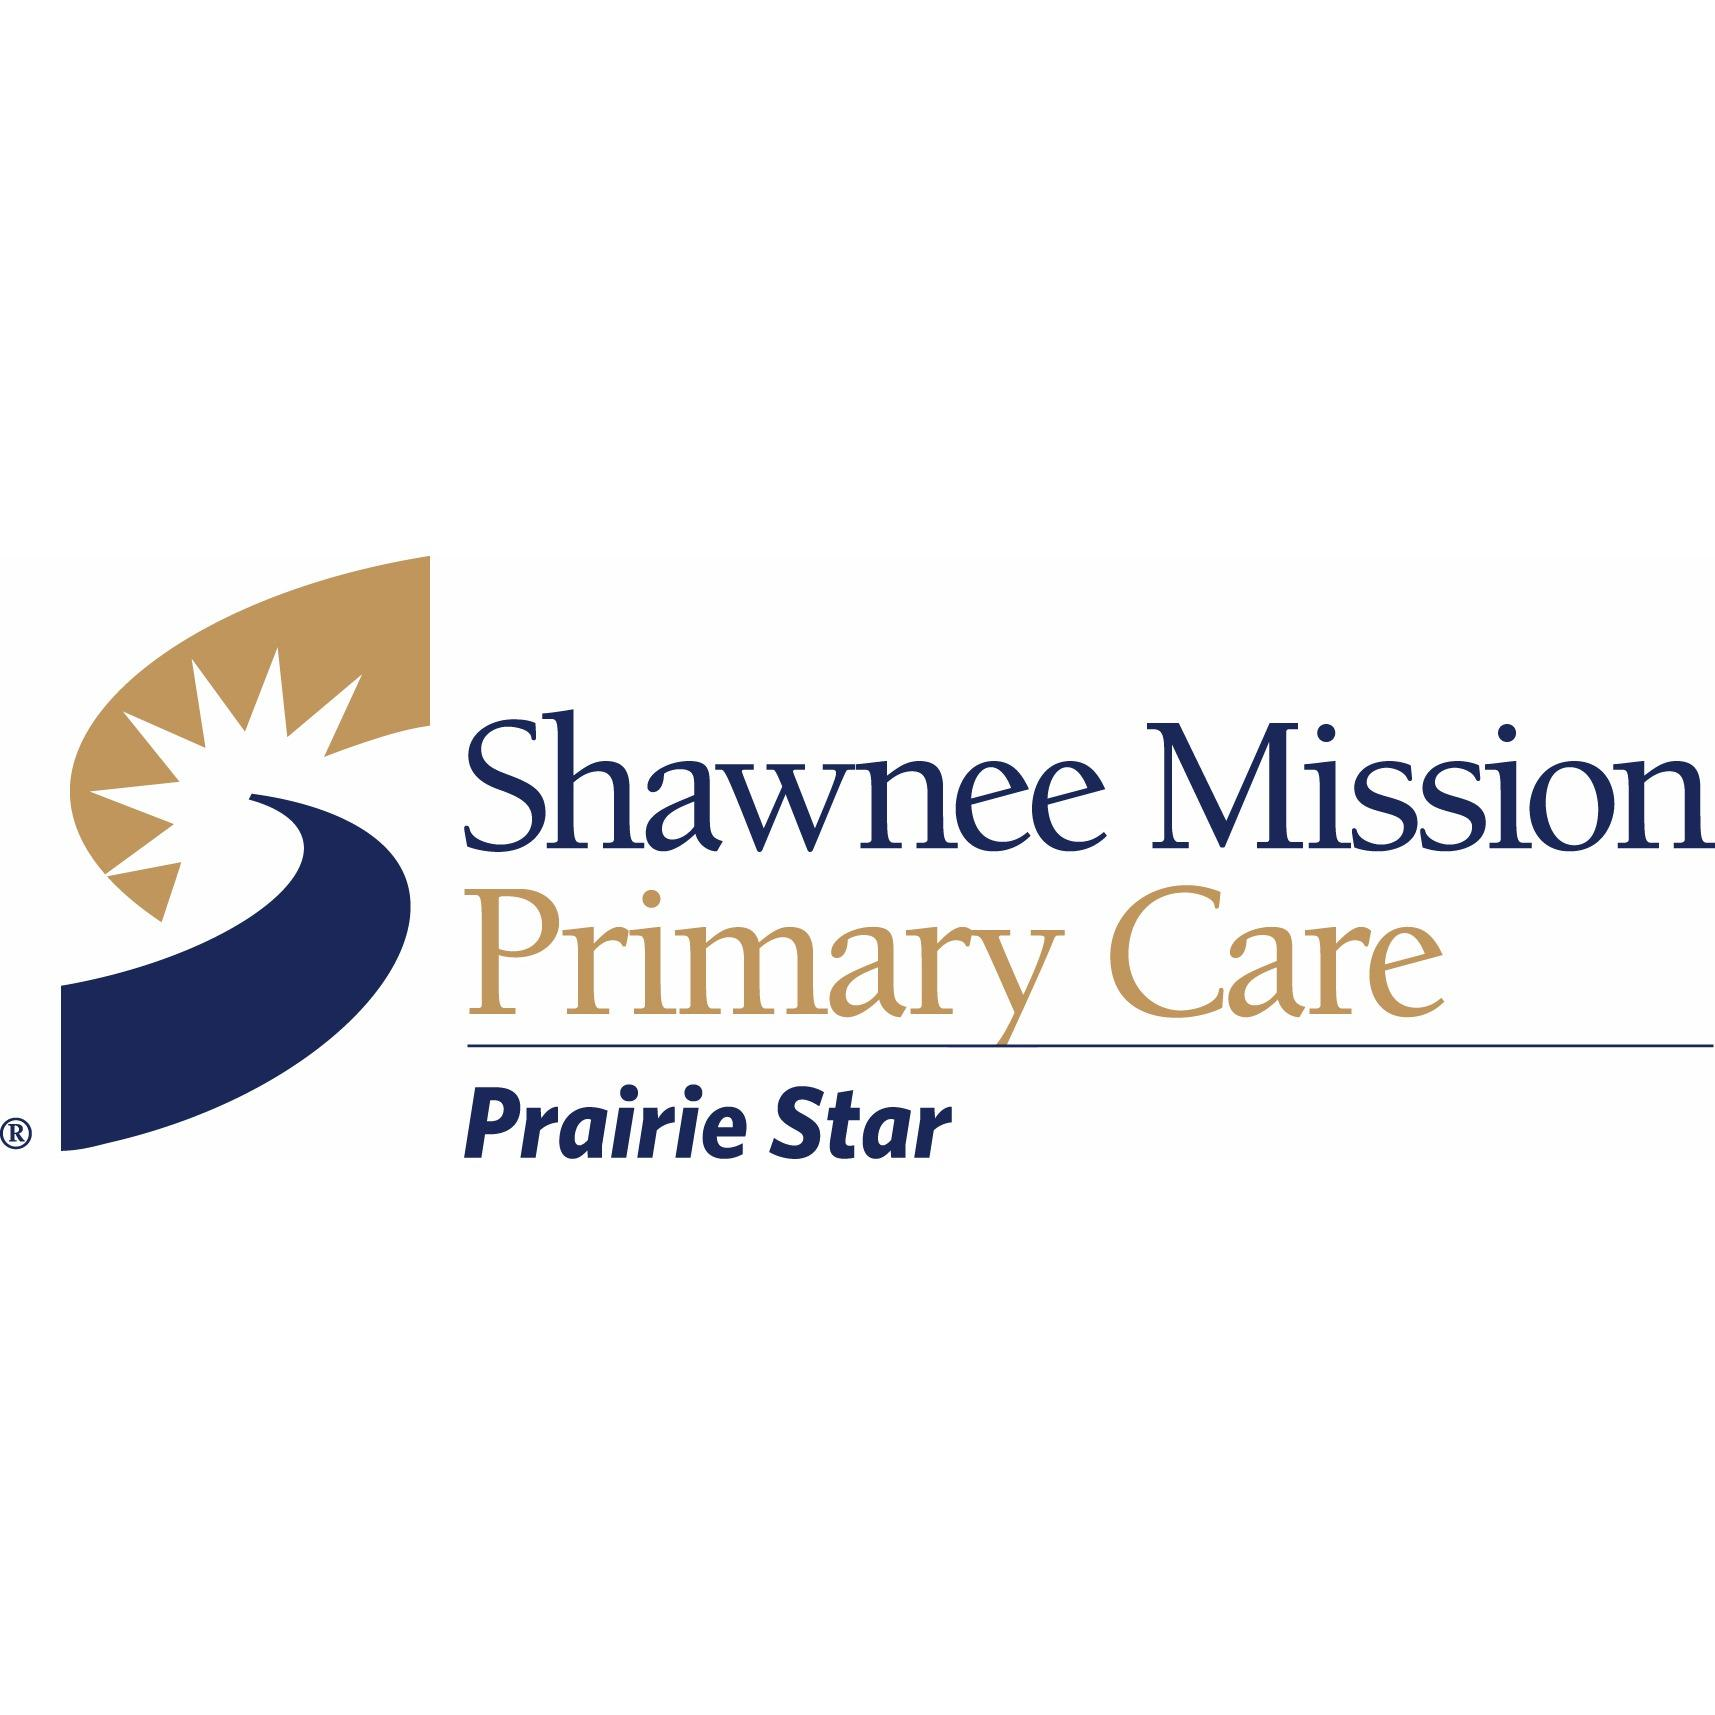 Shawnee Mission Primary Care - Prairie Star